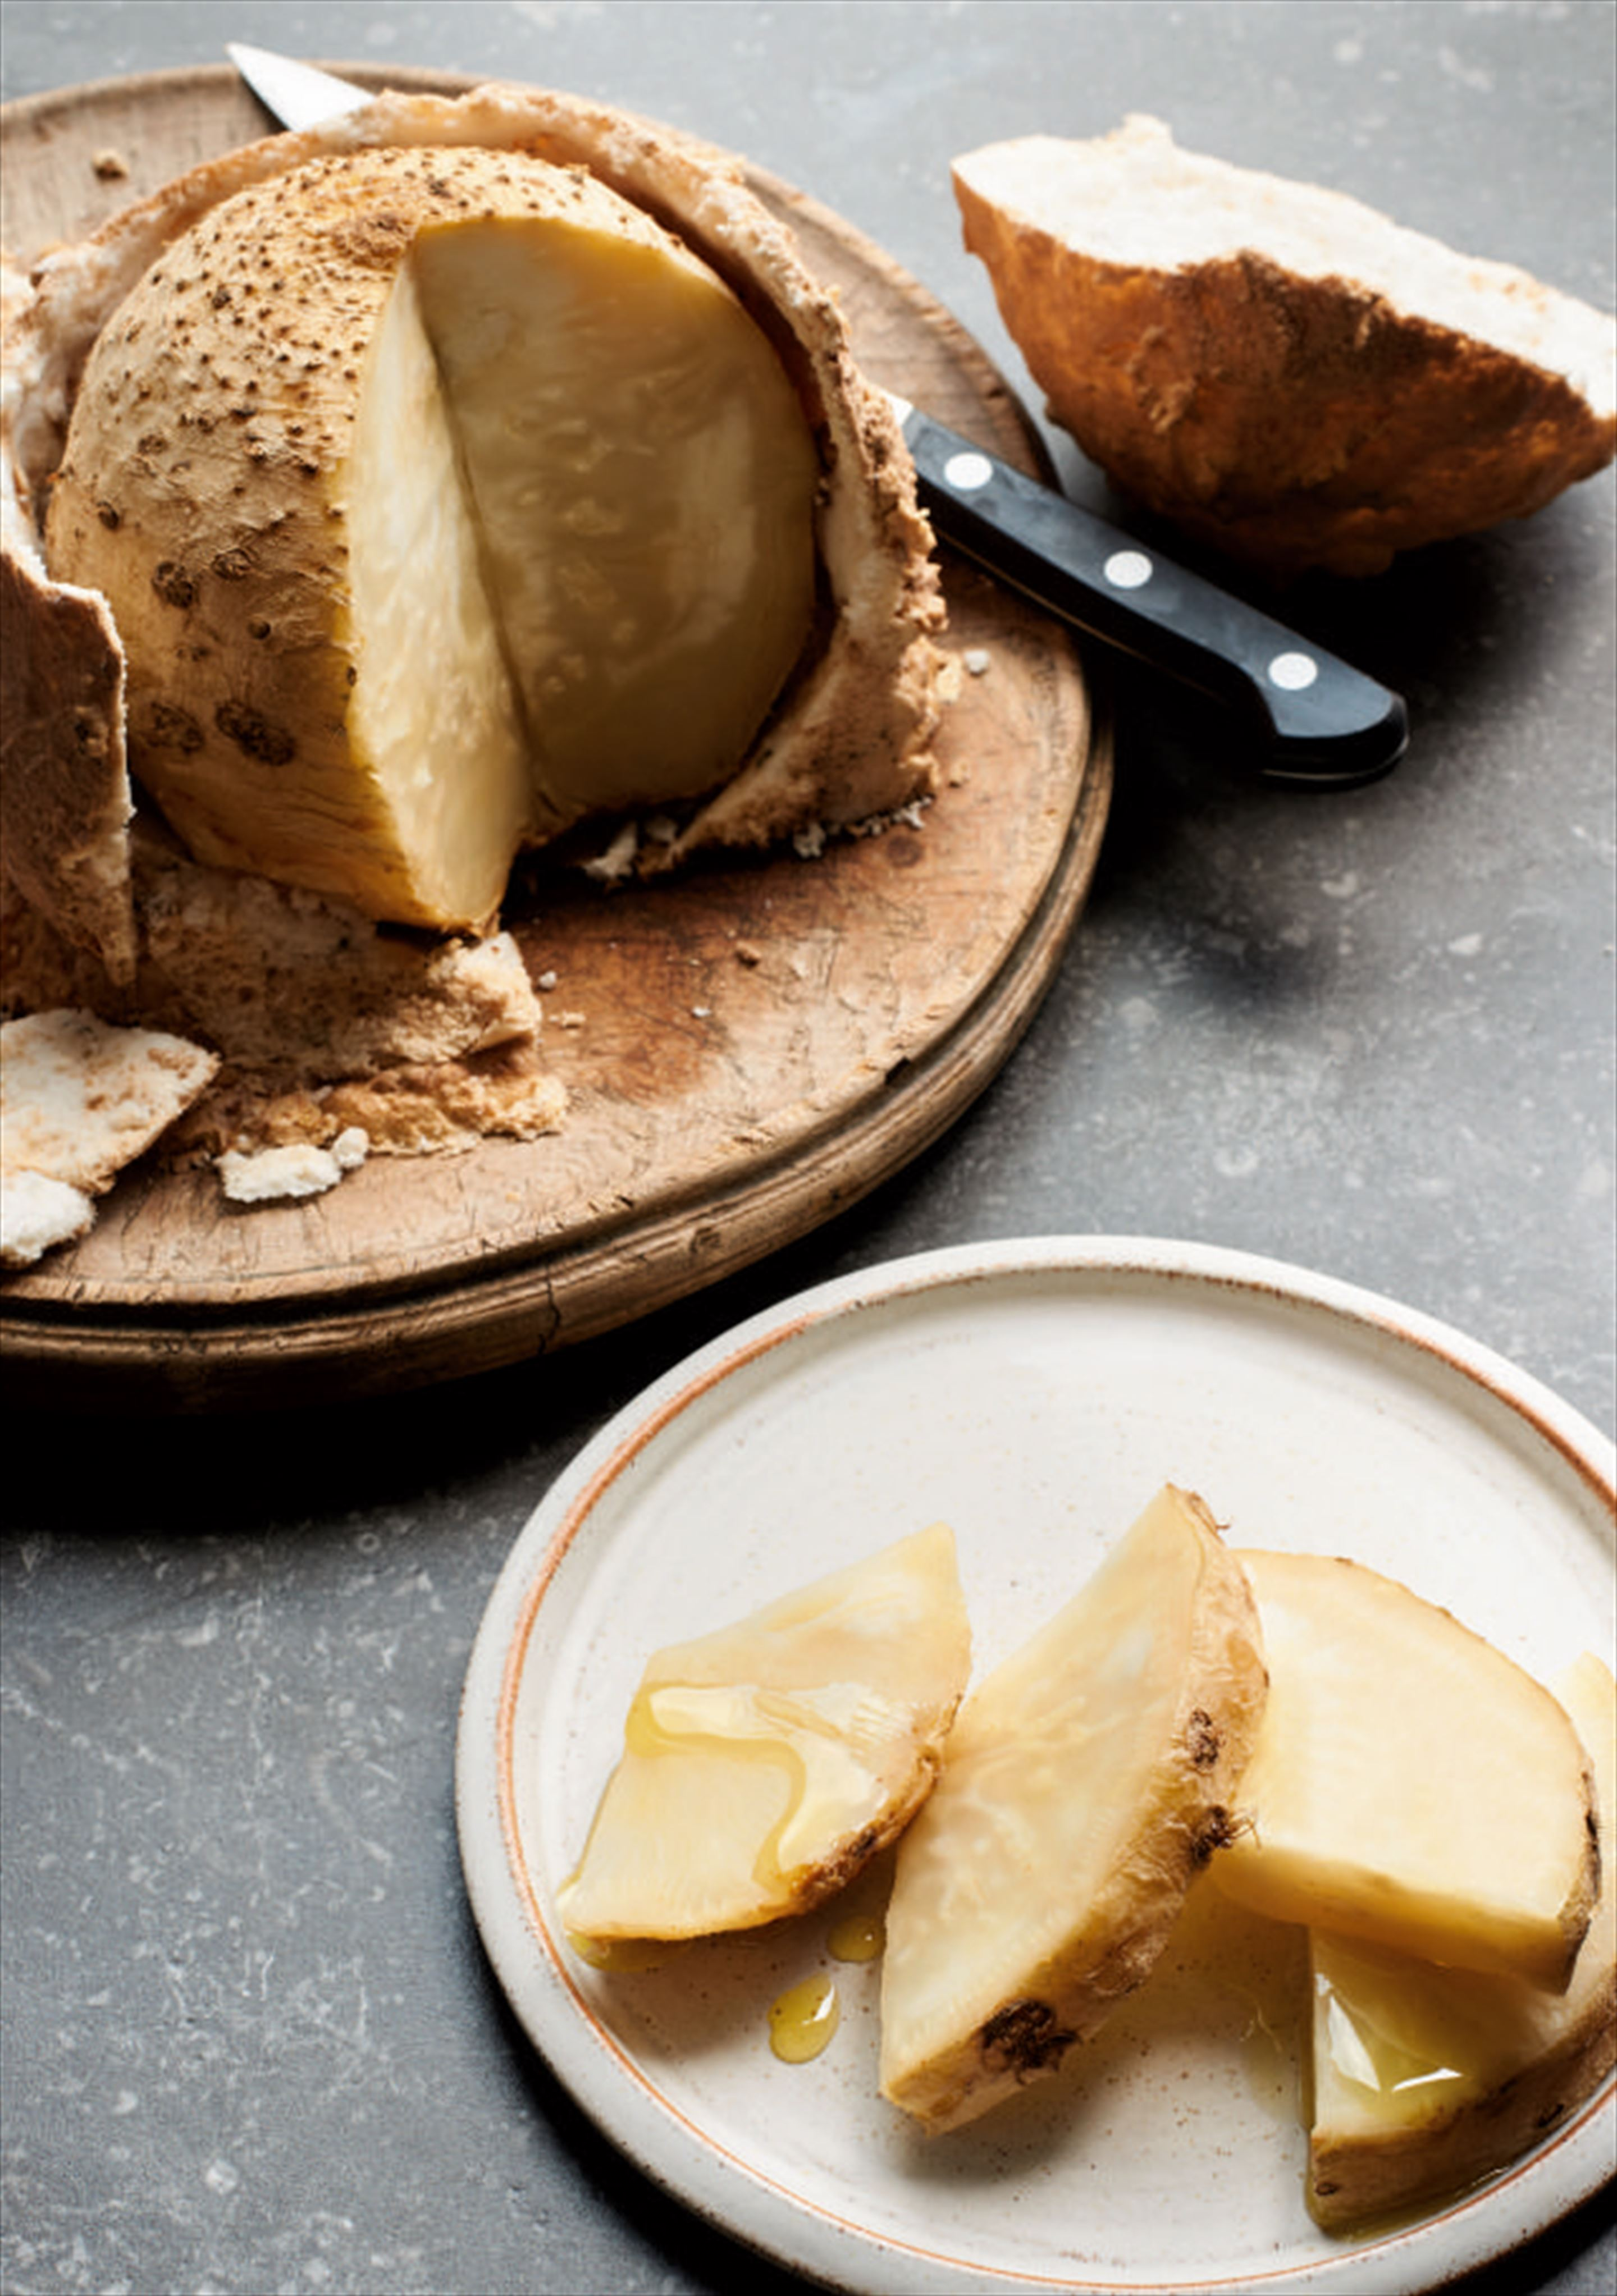 Celeriac baked in a salt and thyme crust